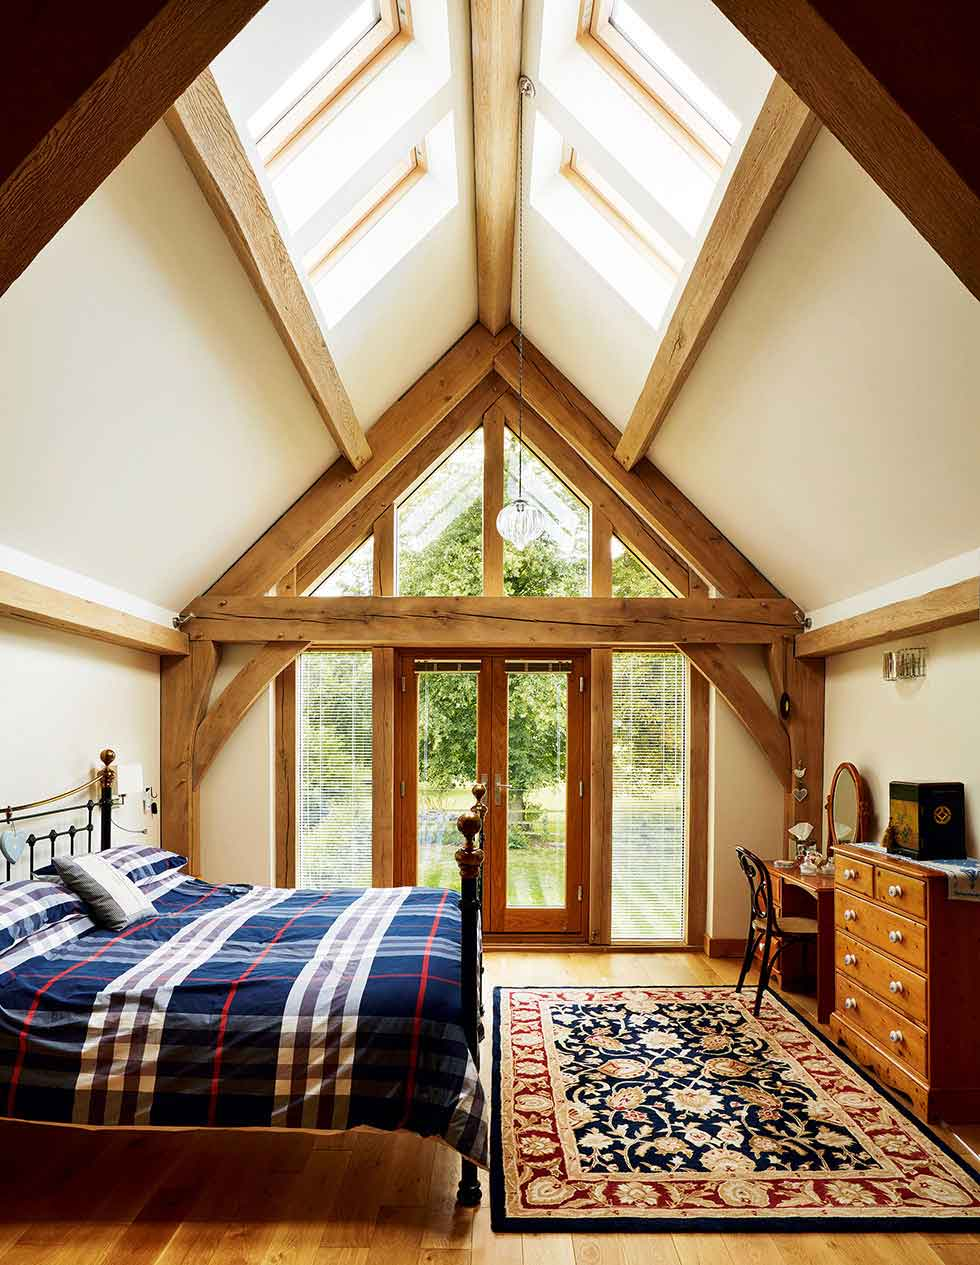 Rooflights in the vaulted ceiling and a glazed gable end ensure this bedroom gets lots of natural light